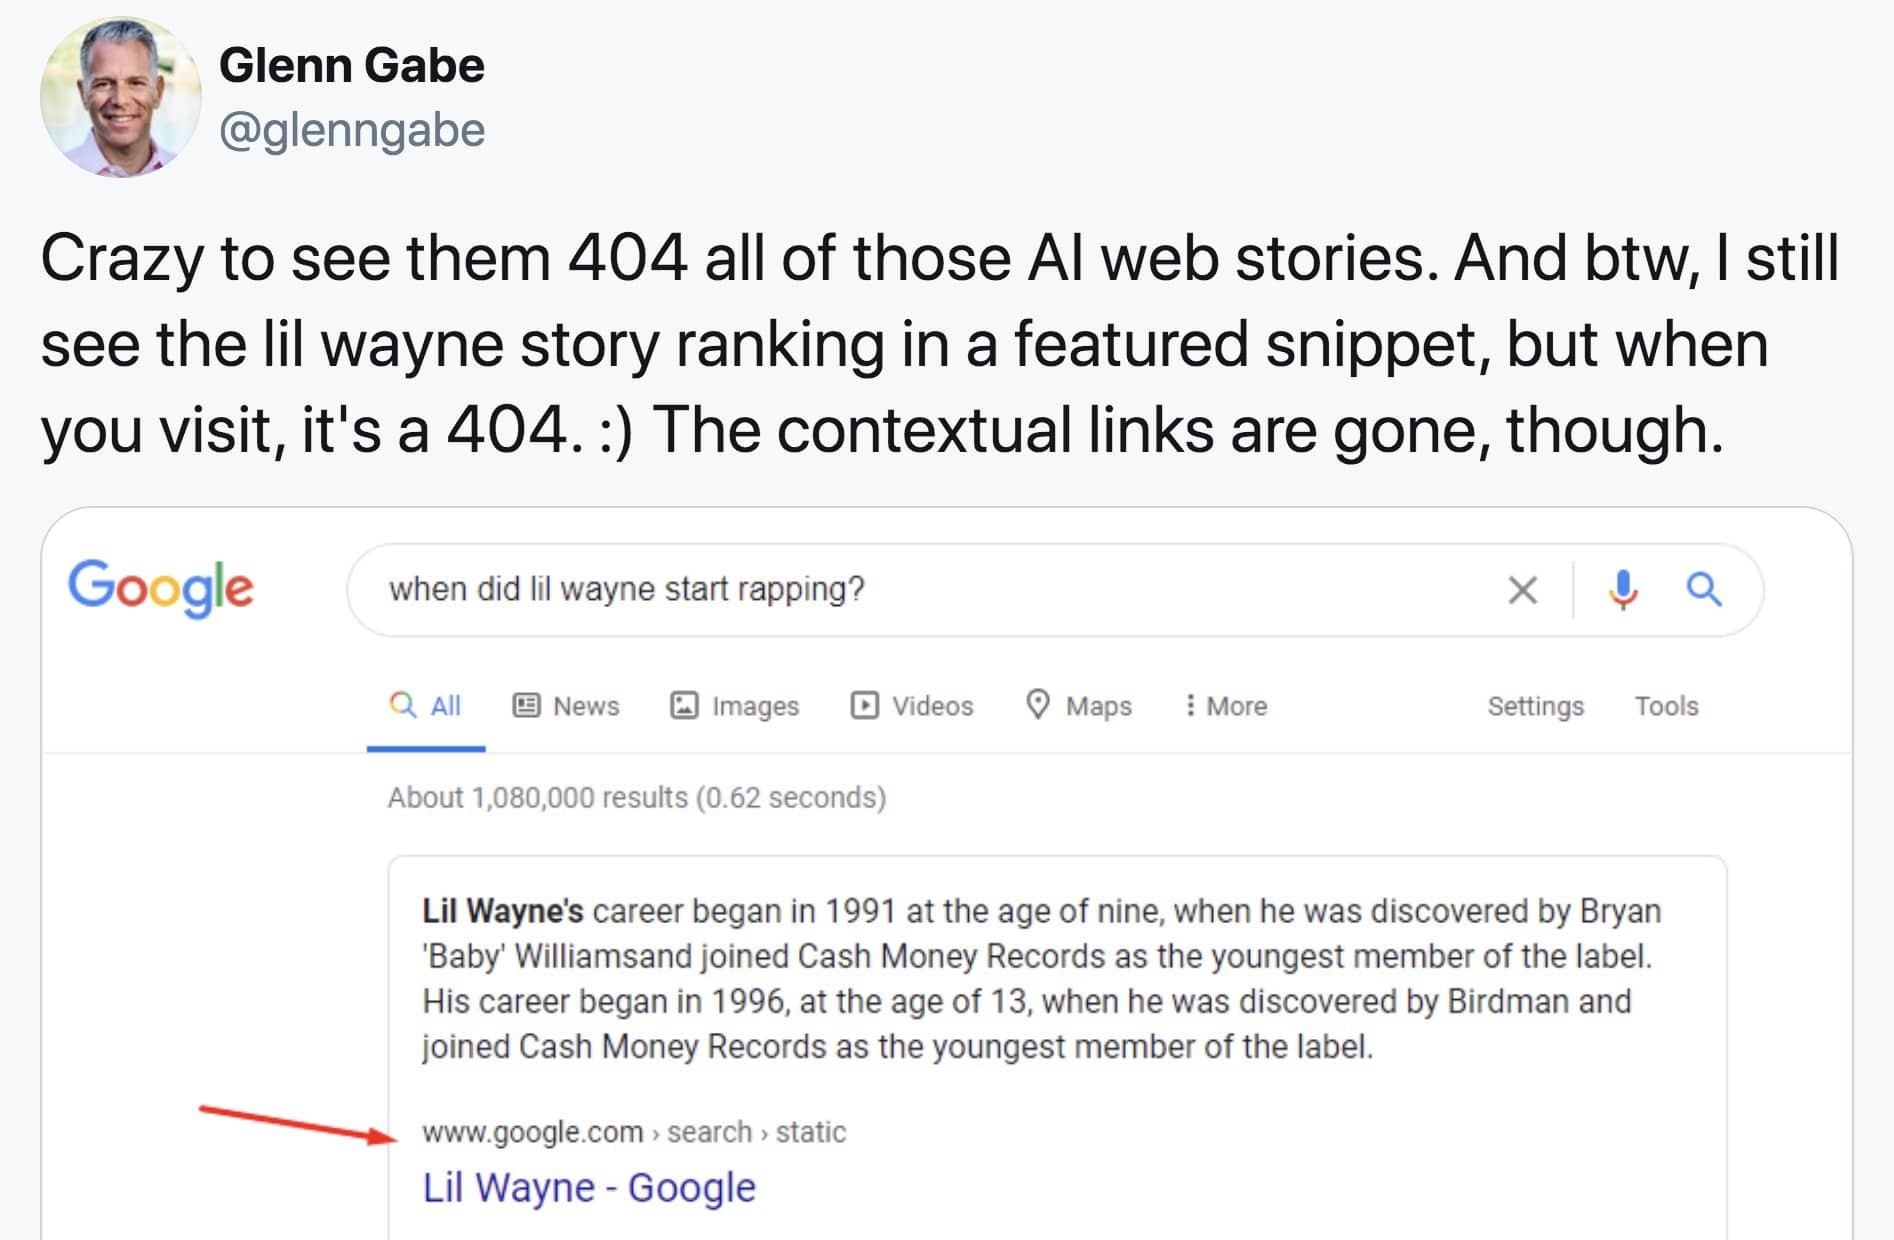 google web stories 404